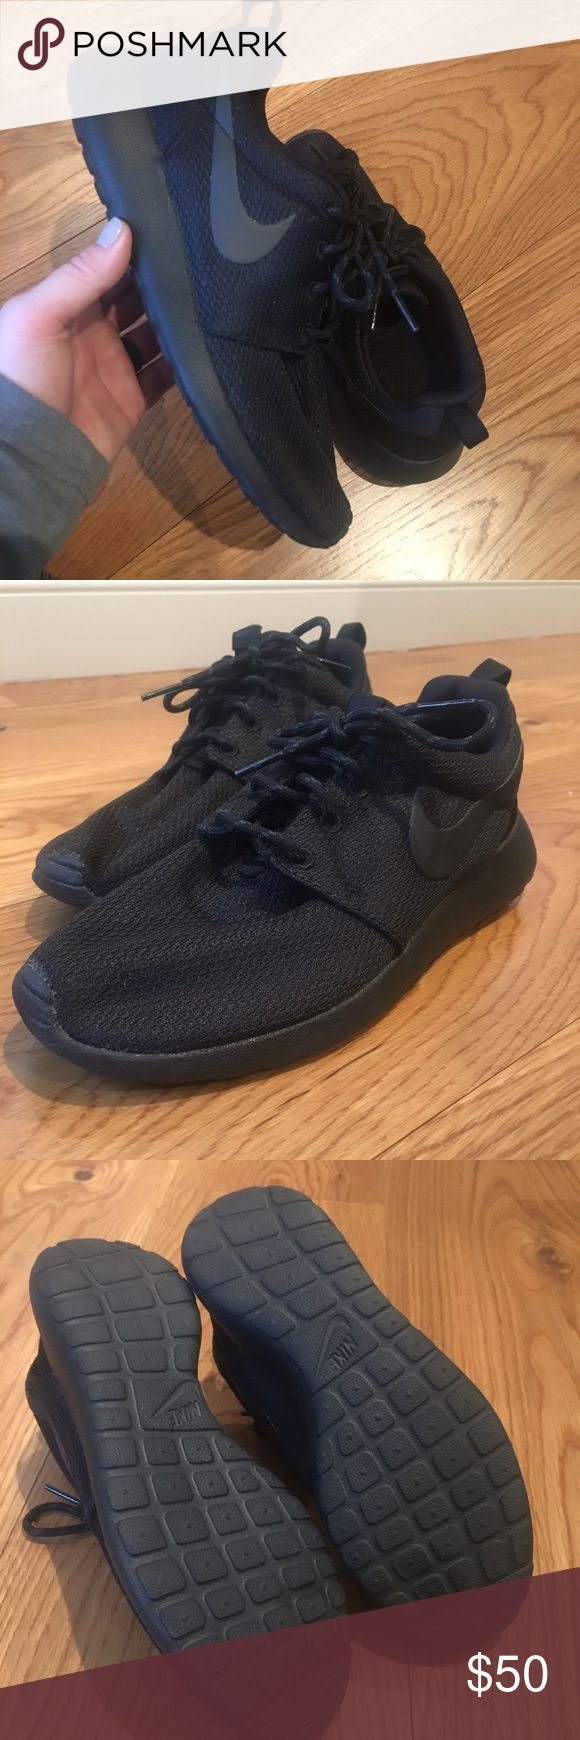 All Black Nike Roshe Run - Women Size 6.5 NWOT Like new condition. Worn once to the gym - didn't fit me how I like. No box. Non smoking house. if you want any more pictures, let me know! No trades, make some offers 😊 Nike Shoes Athletic Shoes